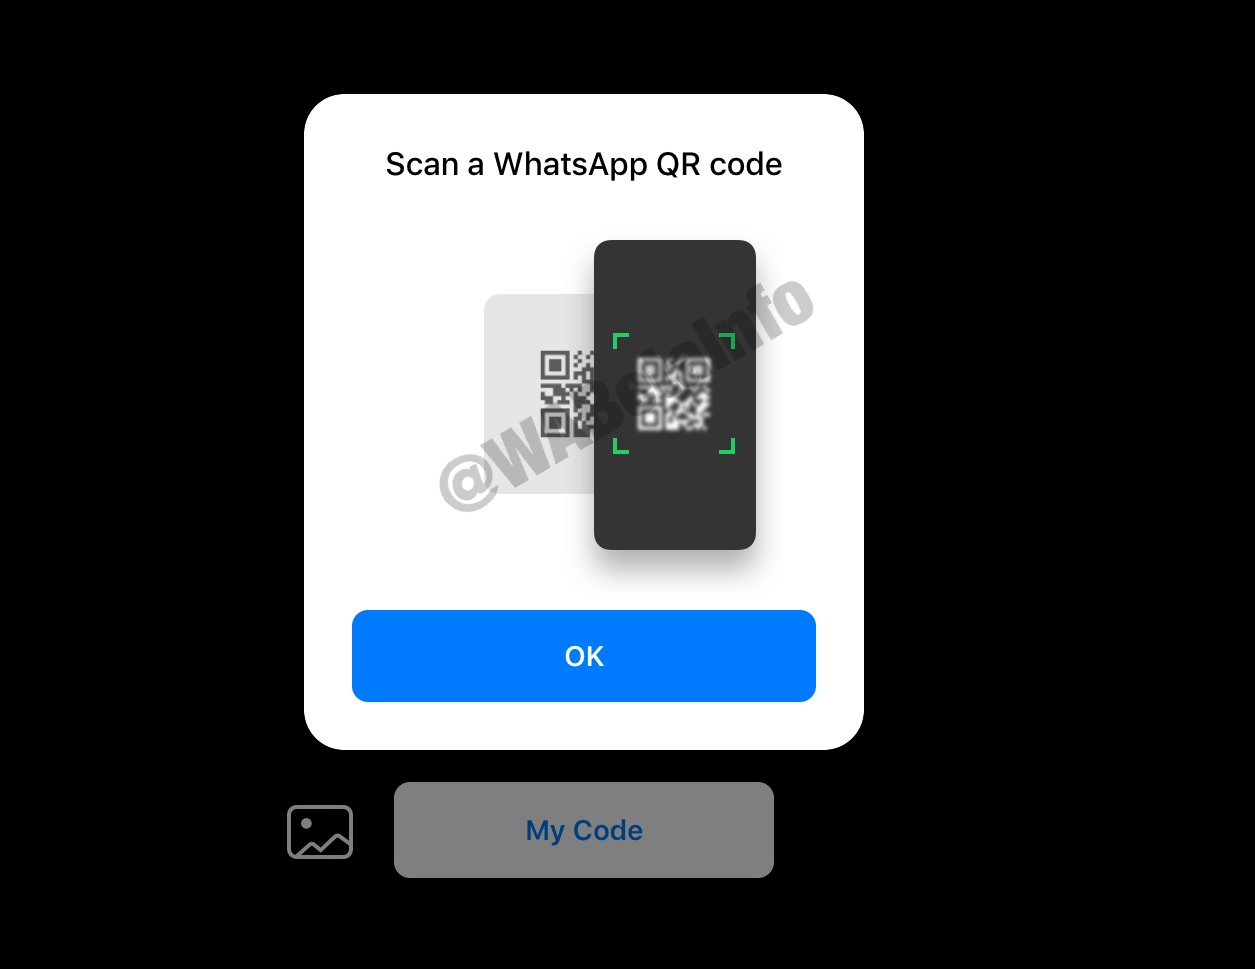 WhatsApp QR scan in beta